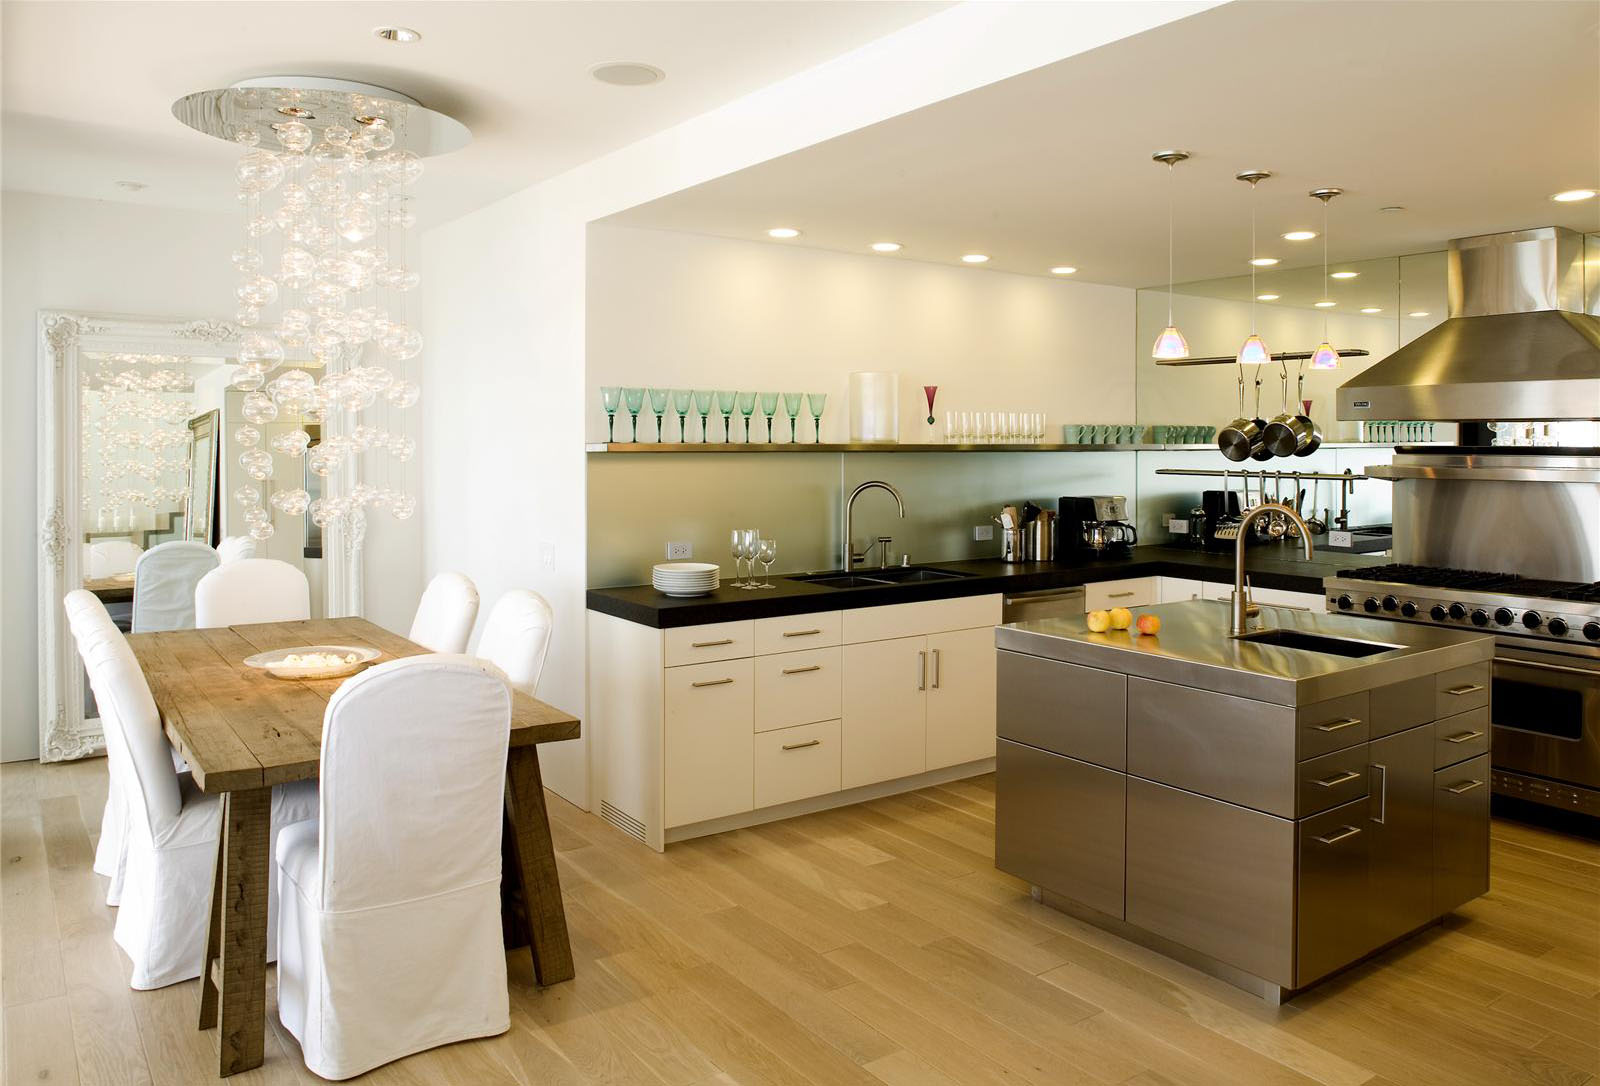 Luxurious White Open Kitchen Design Idea With White Cabinet And Stainless  Steel Island And Wooden Dining